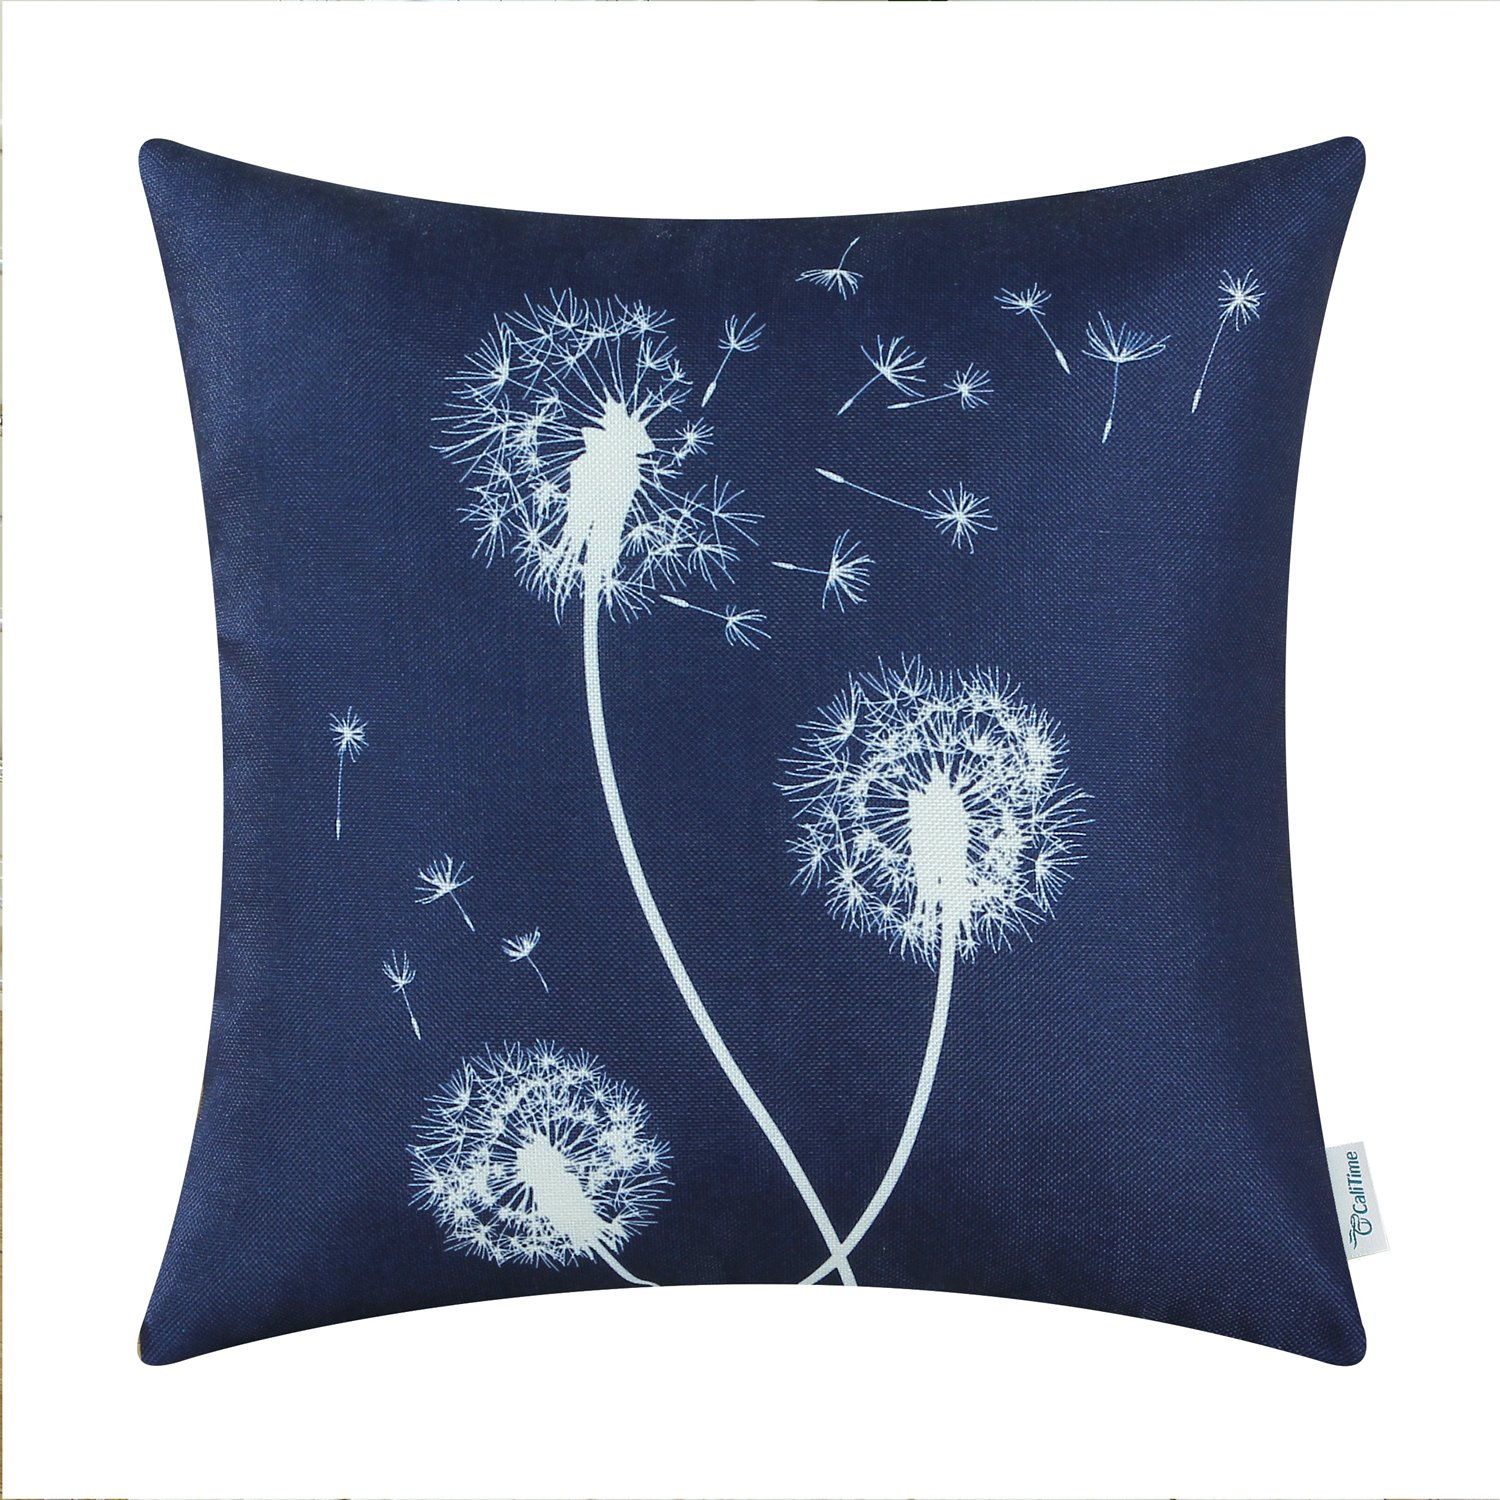 DSCF043PQR Ltd CaliTime Set of 3 Soft Canvas Throw Pillow Covers Cases for Couch Sofa Home Decoration 18 X 18 inches Solid Dandelion Print Medium Grey Qingdao PT Trading Co